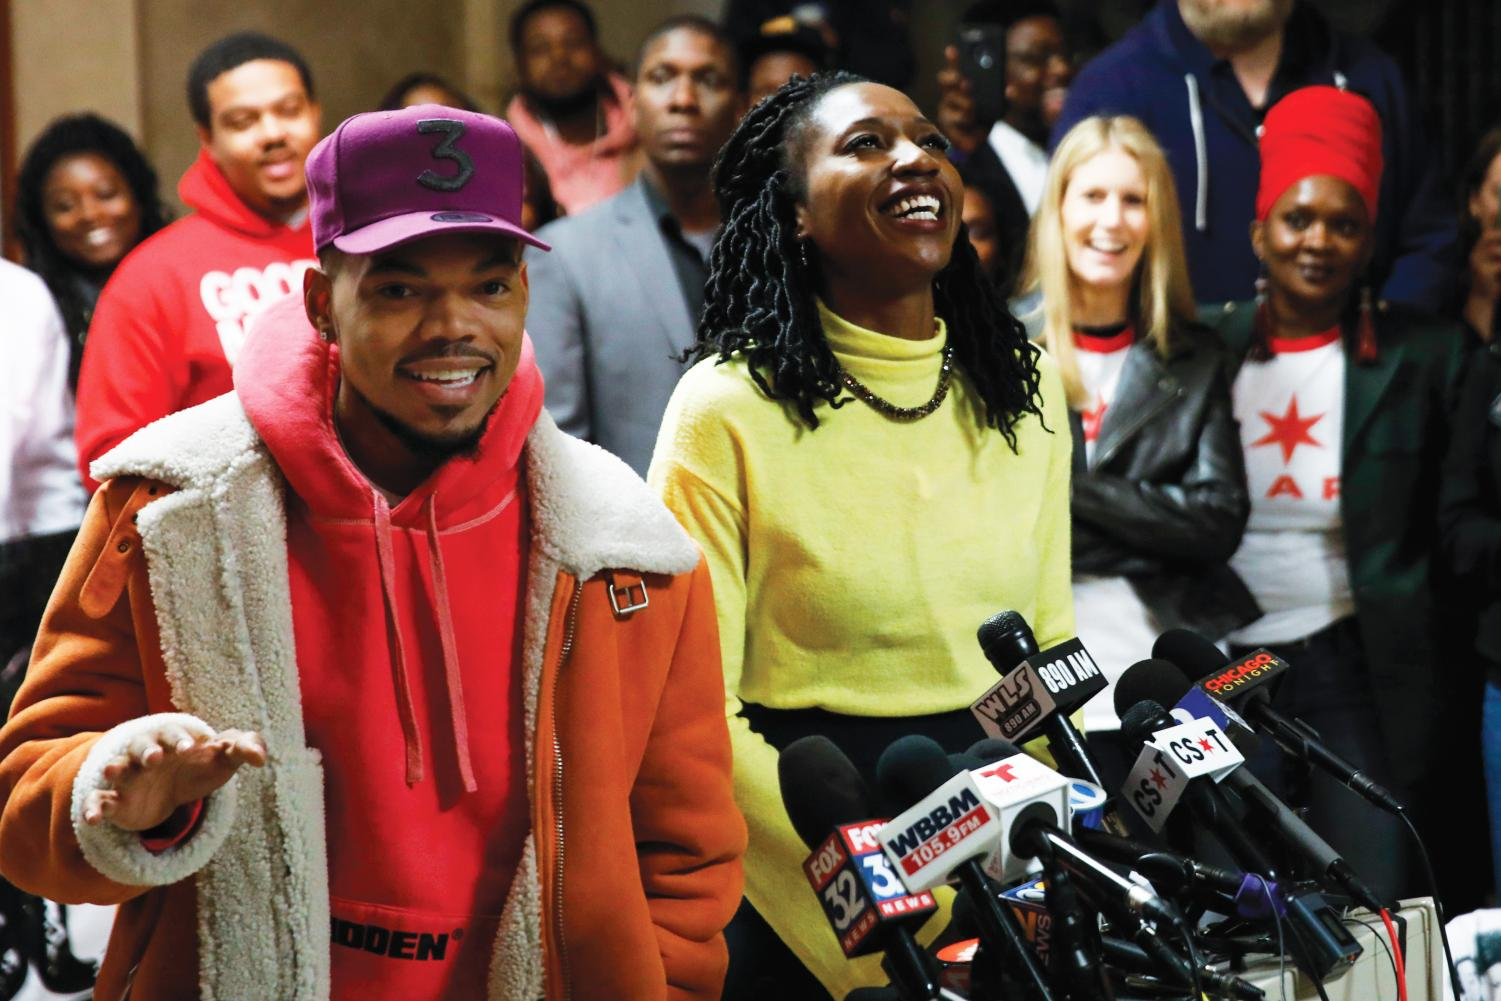 Chance the Rapper endorses Amara Enyia, right, for mayor of Chicago at a news conference at City Hall on Oct. 16 in Chicago